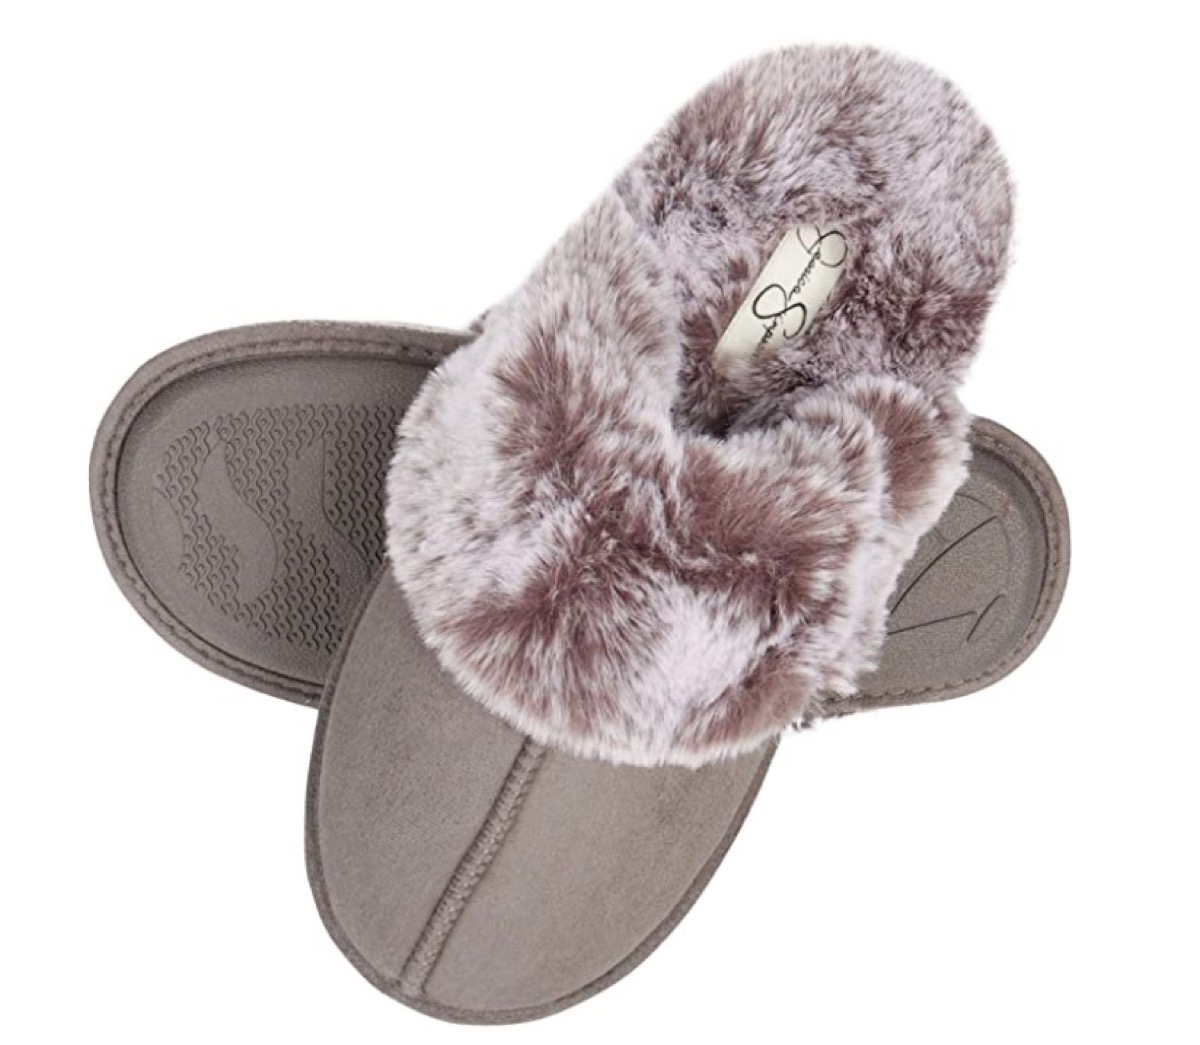 gray slippers with faux fur lining